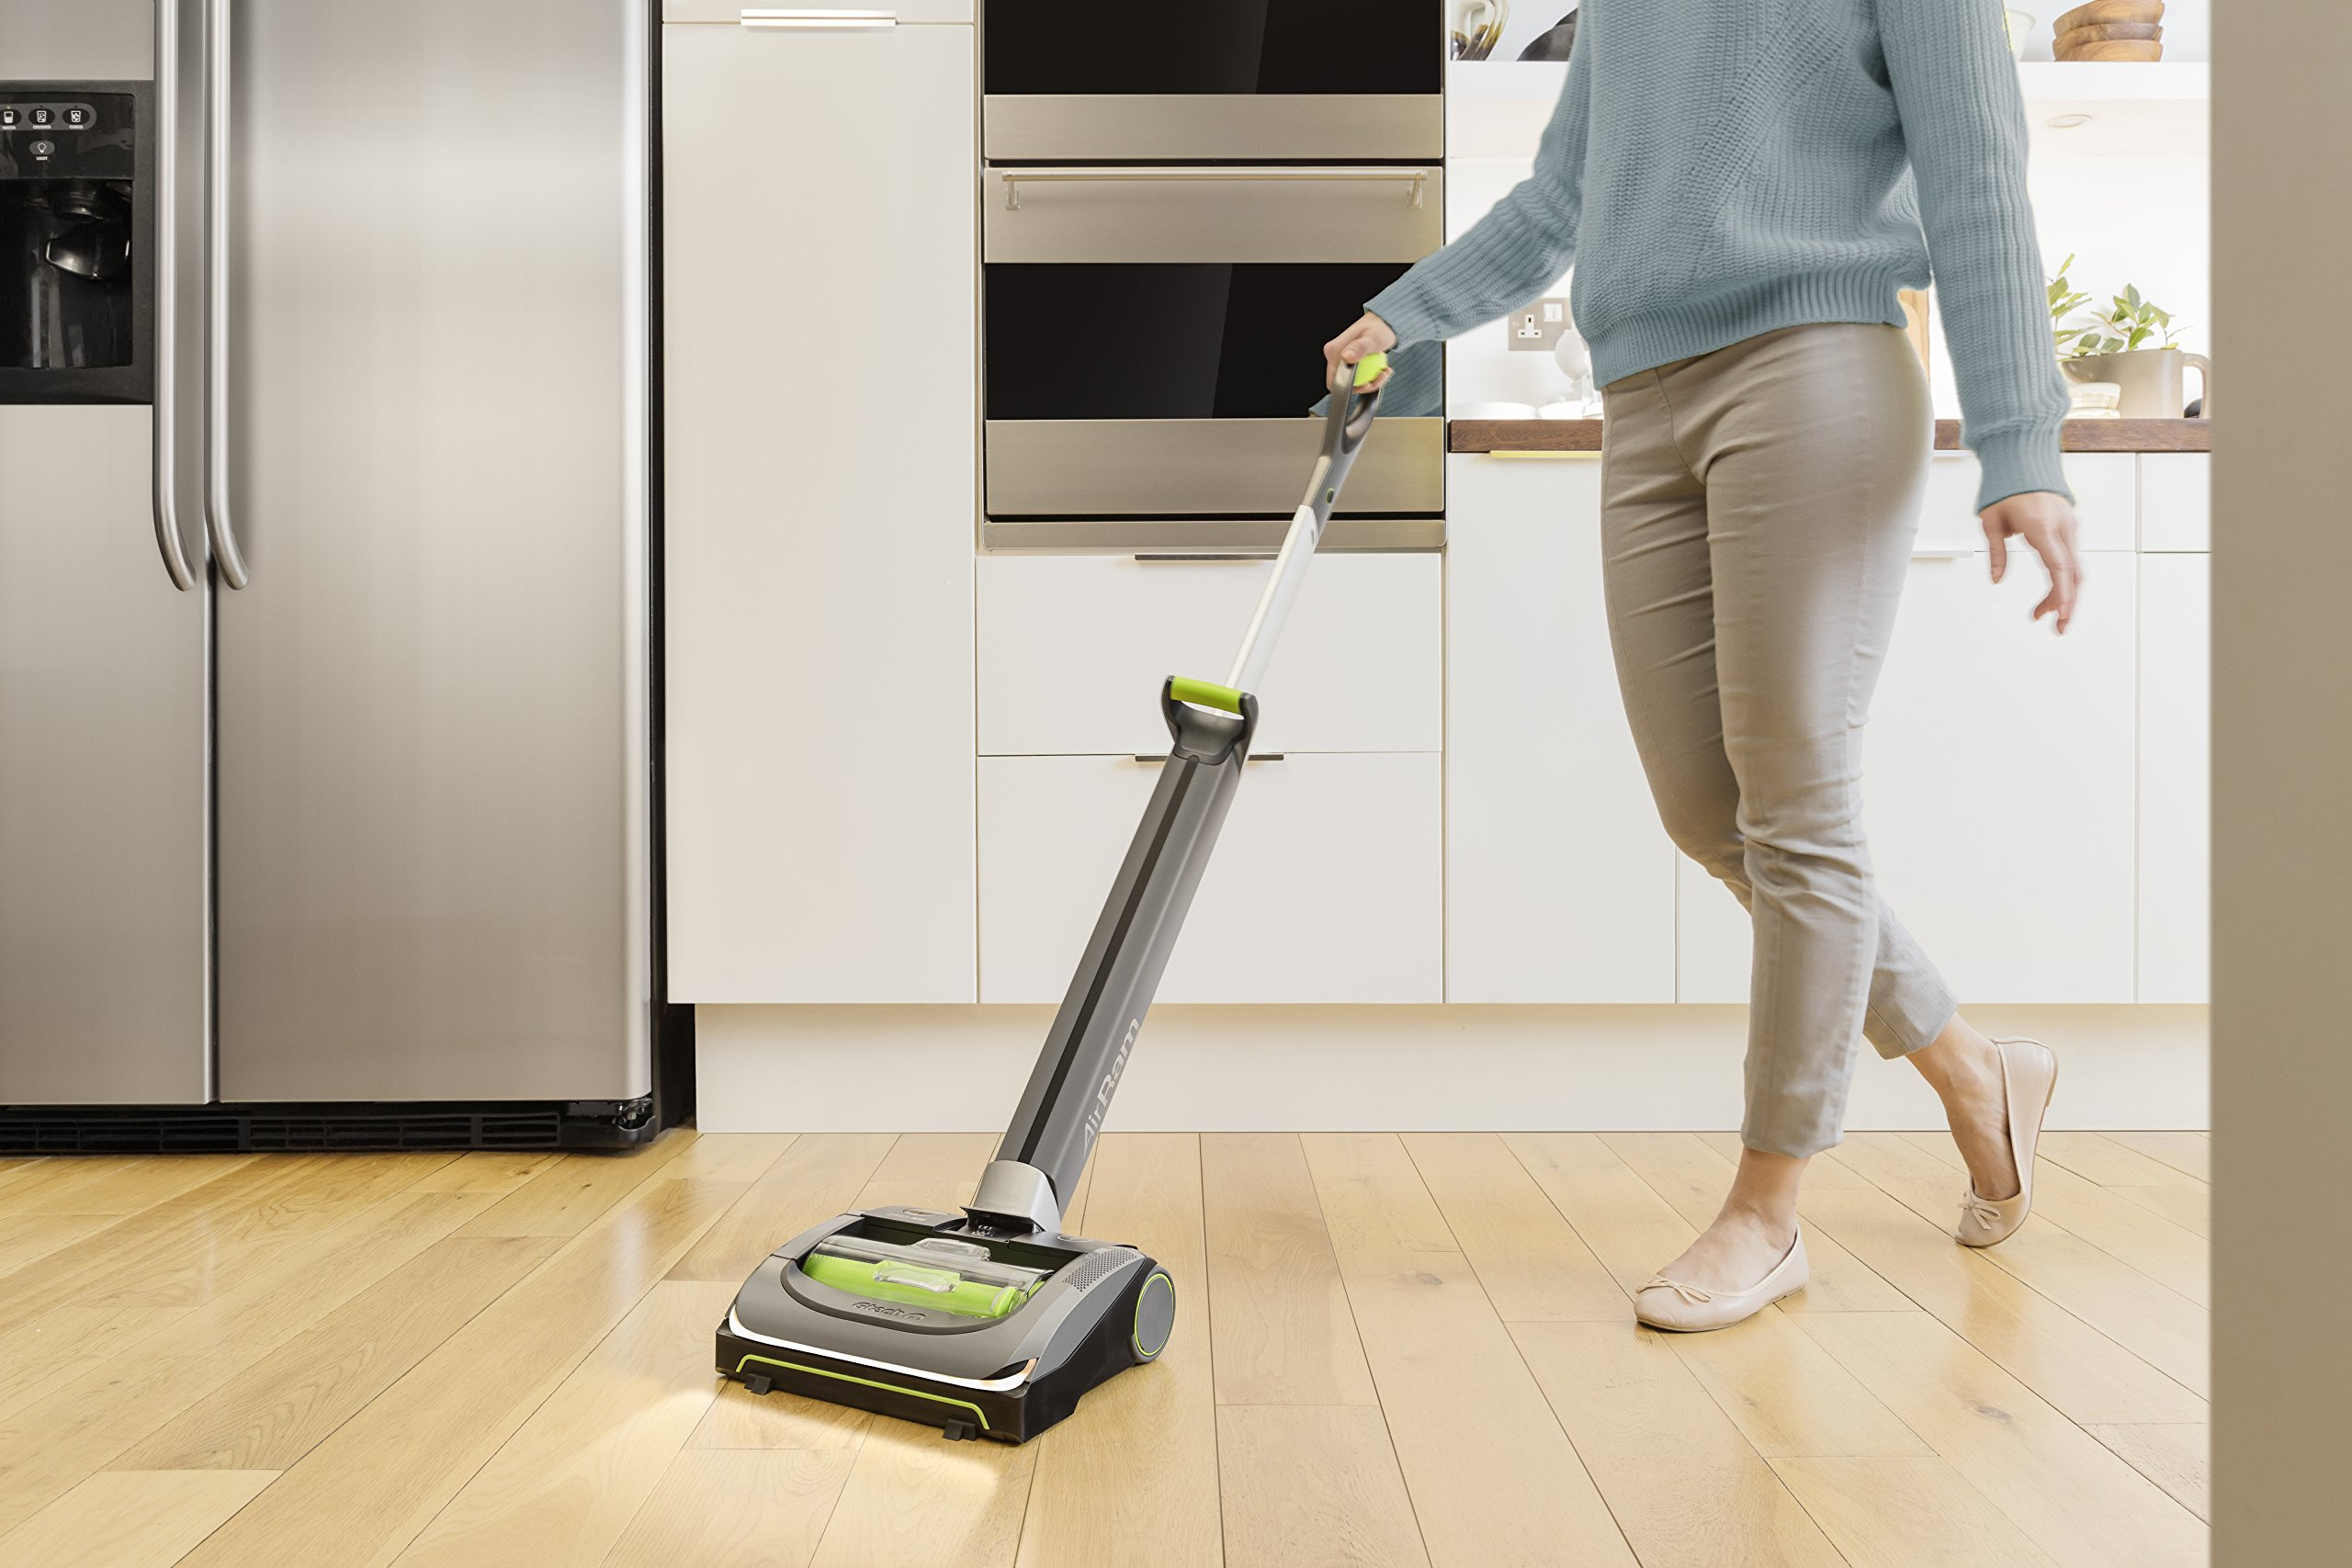 hardwood floor vacuum and steamer of vacuum and floor care shop amazon uk with vacuum cleaners